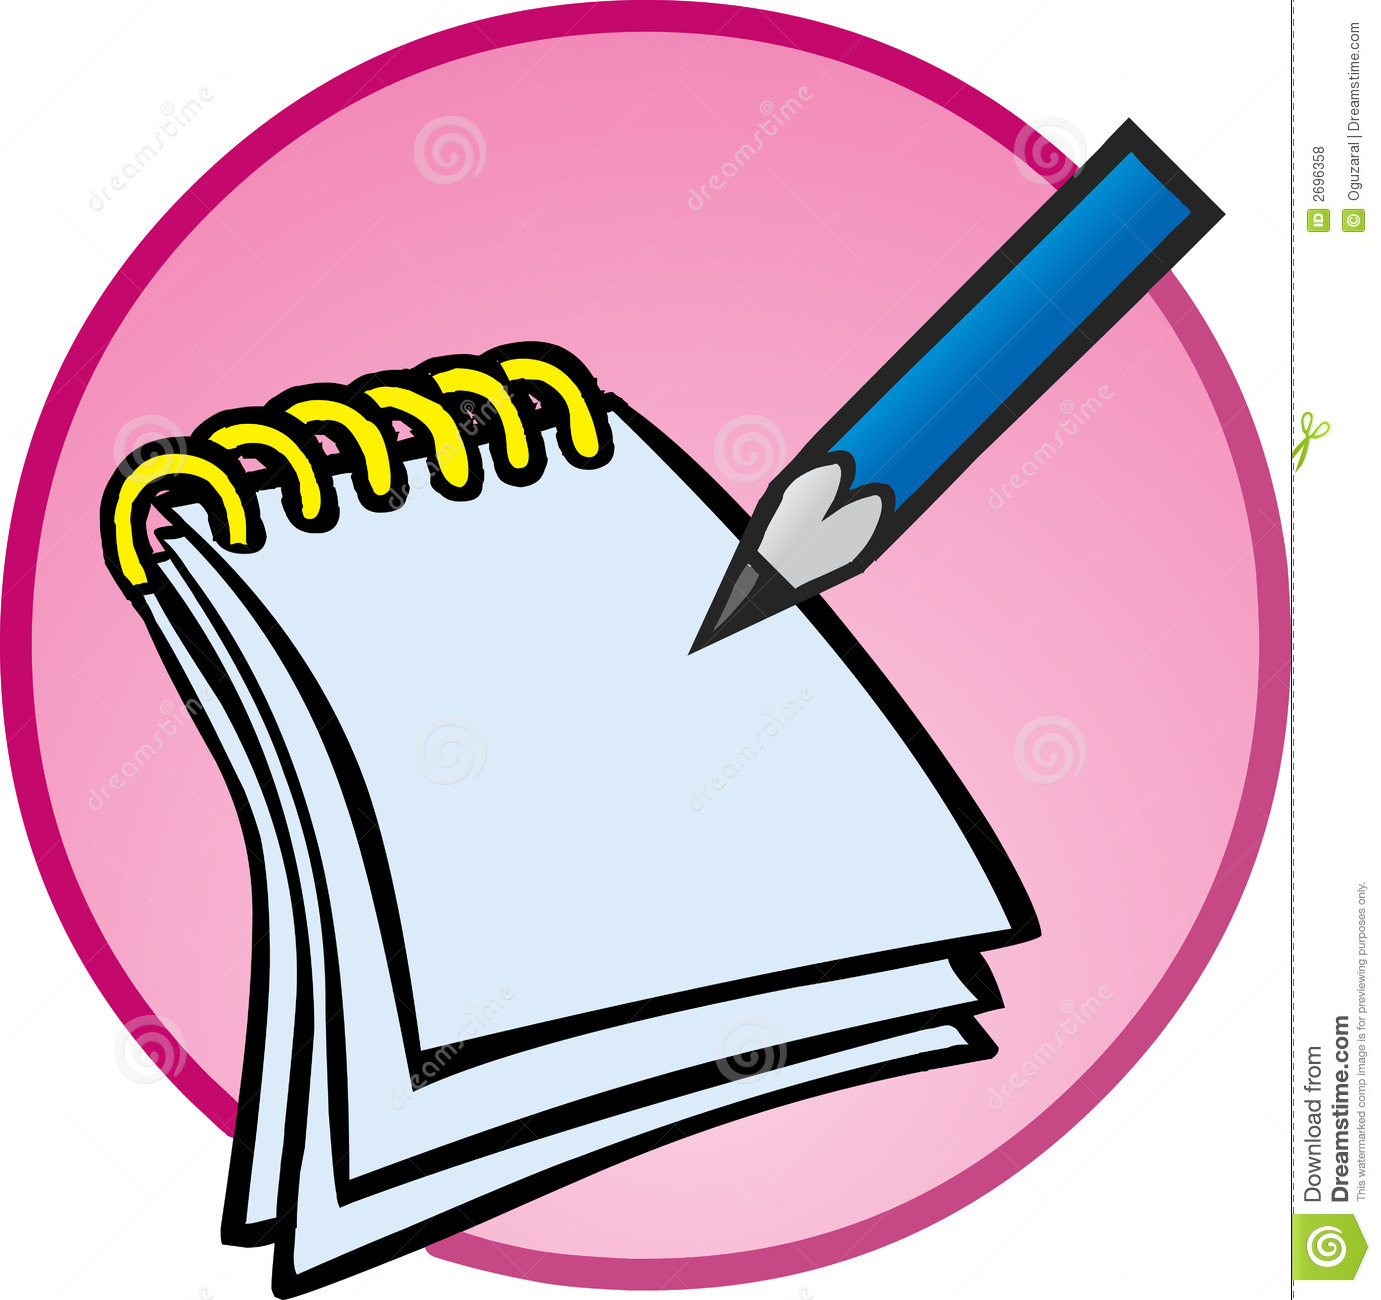 Notebook And Pen Clipart - Clipart Kid